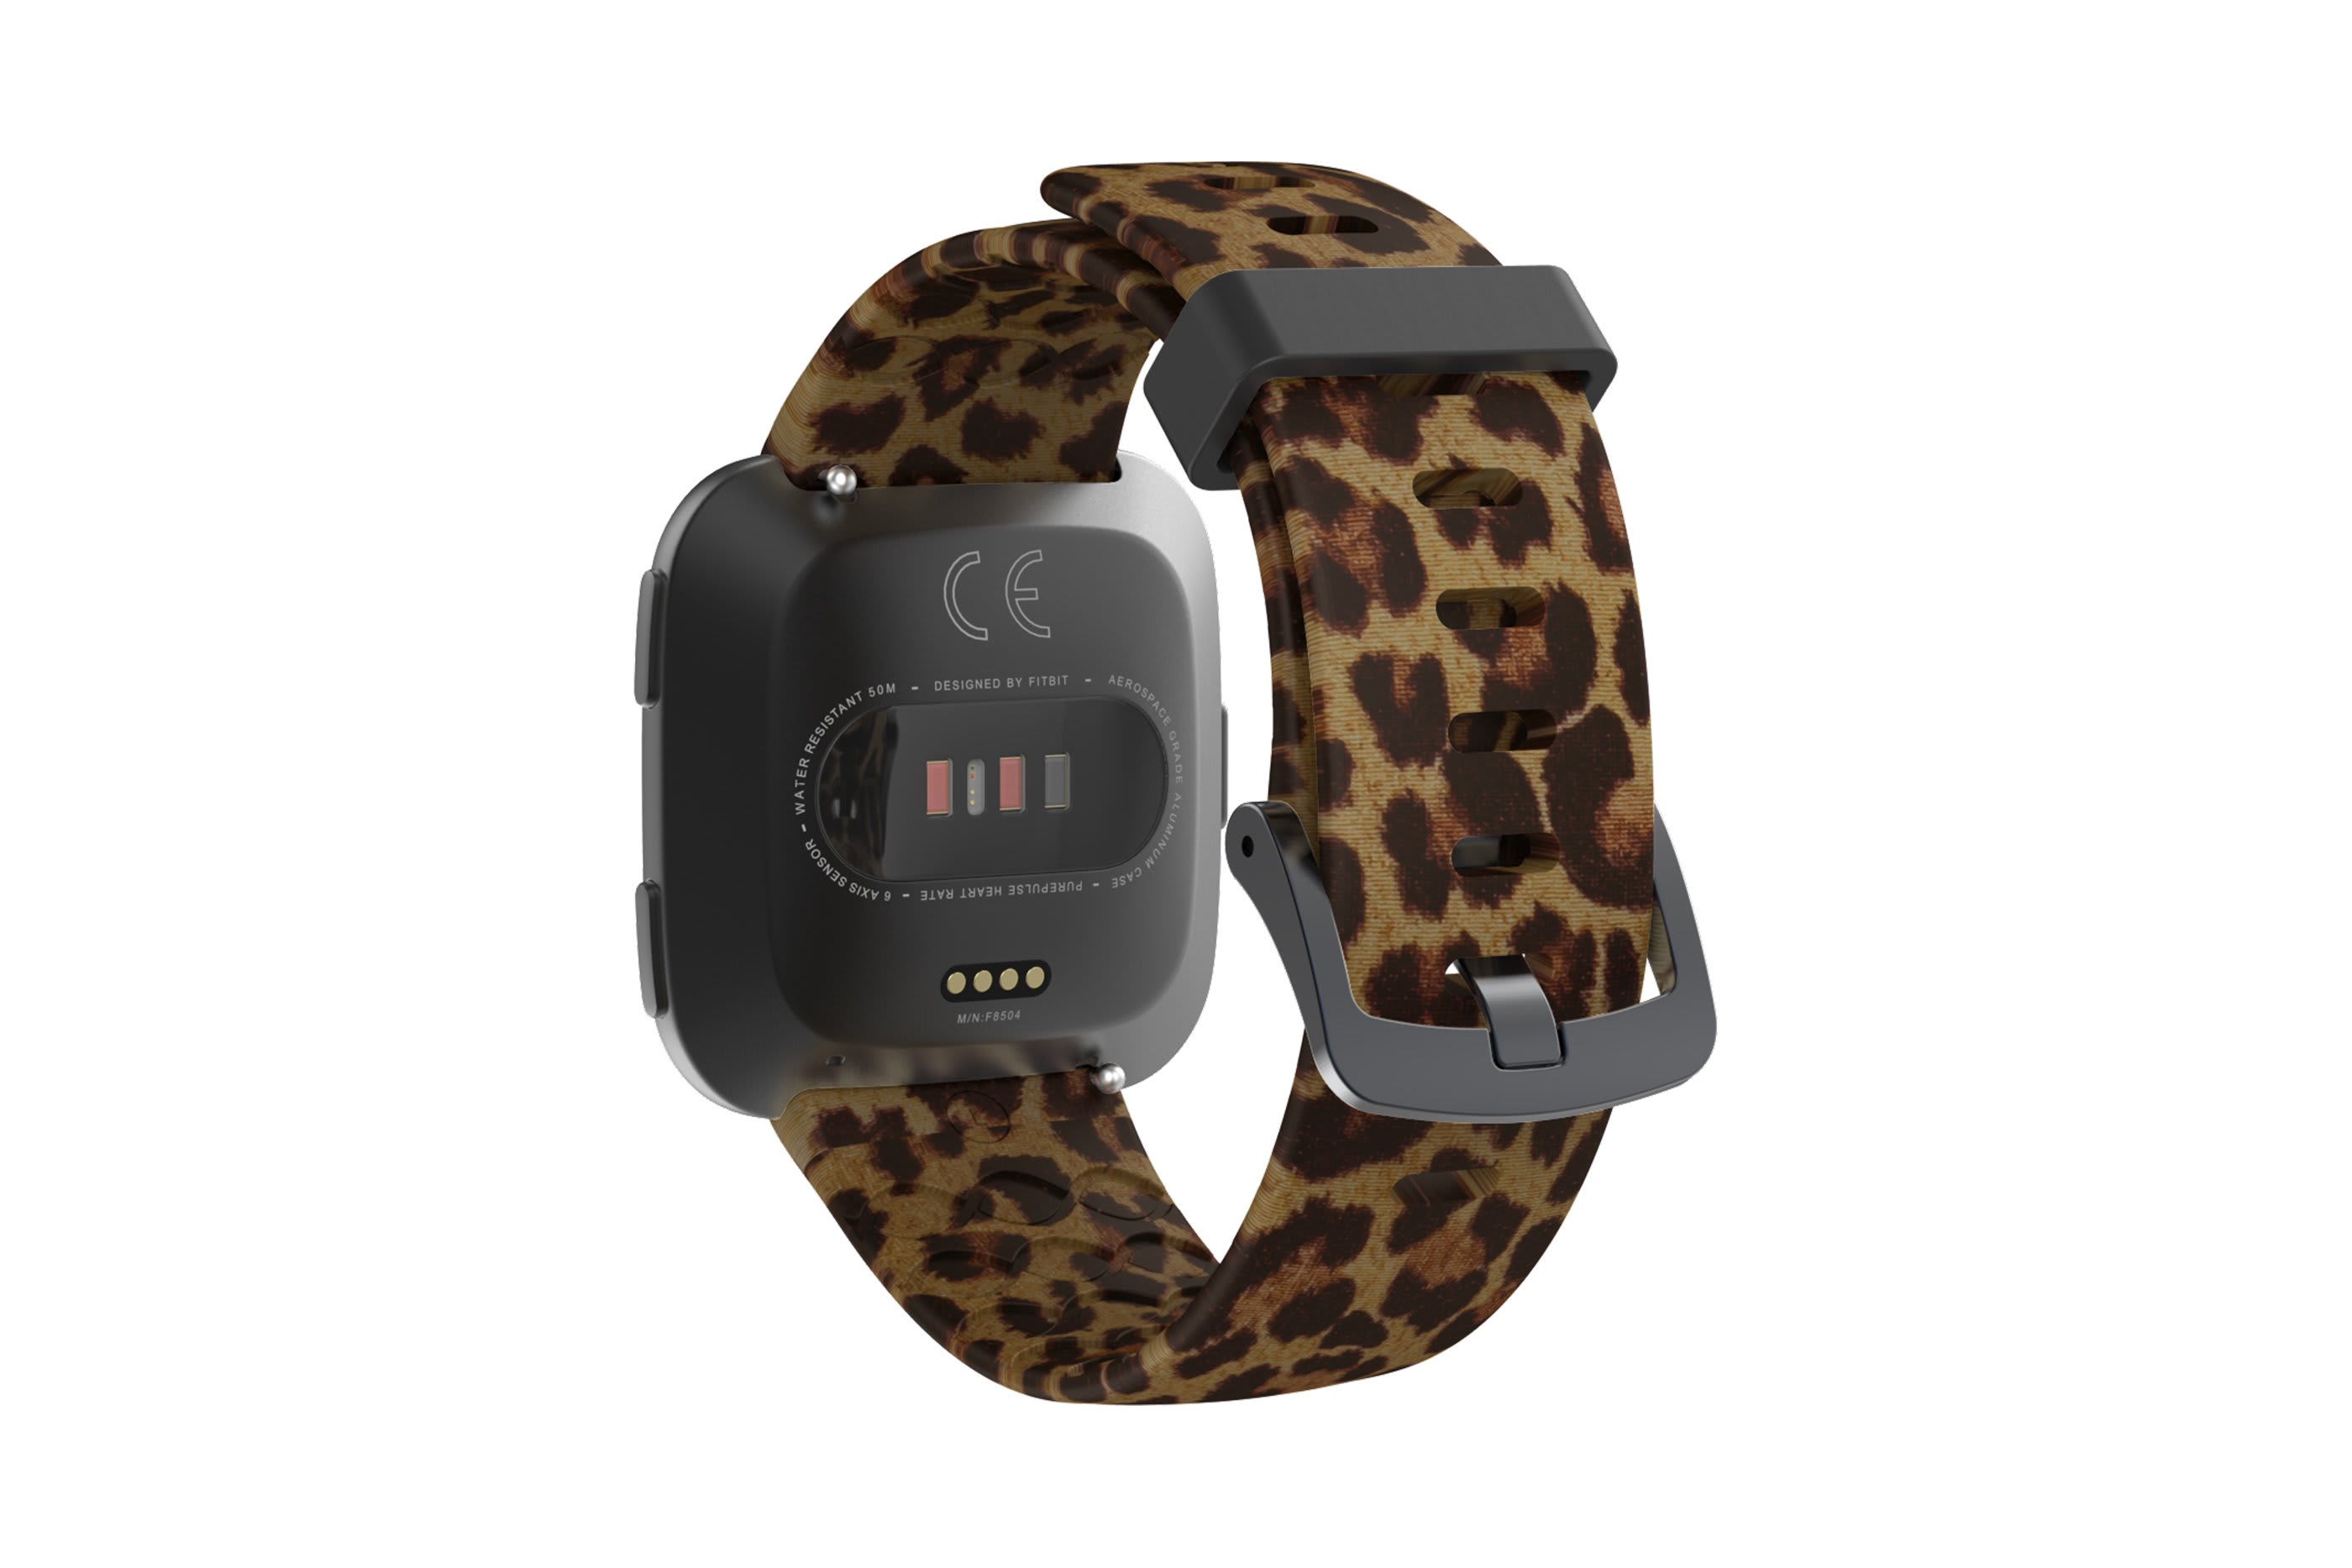 Leopard fitbit versa watch band with gray hardware viewed from top down